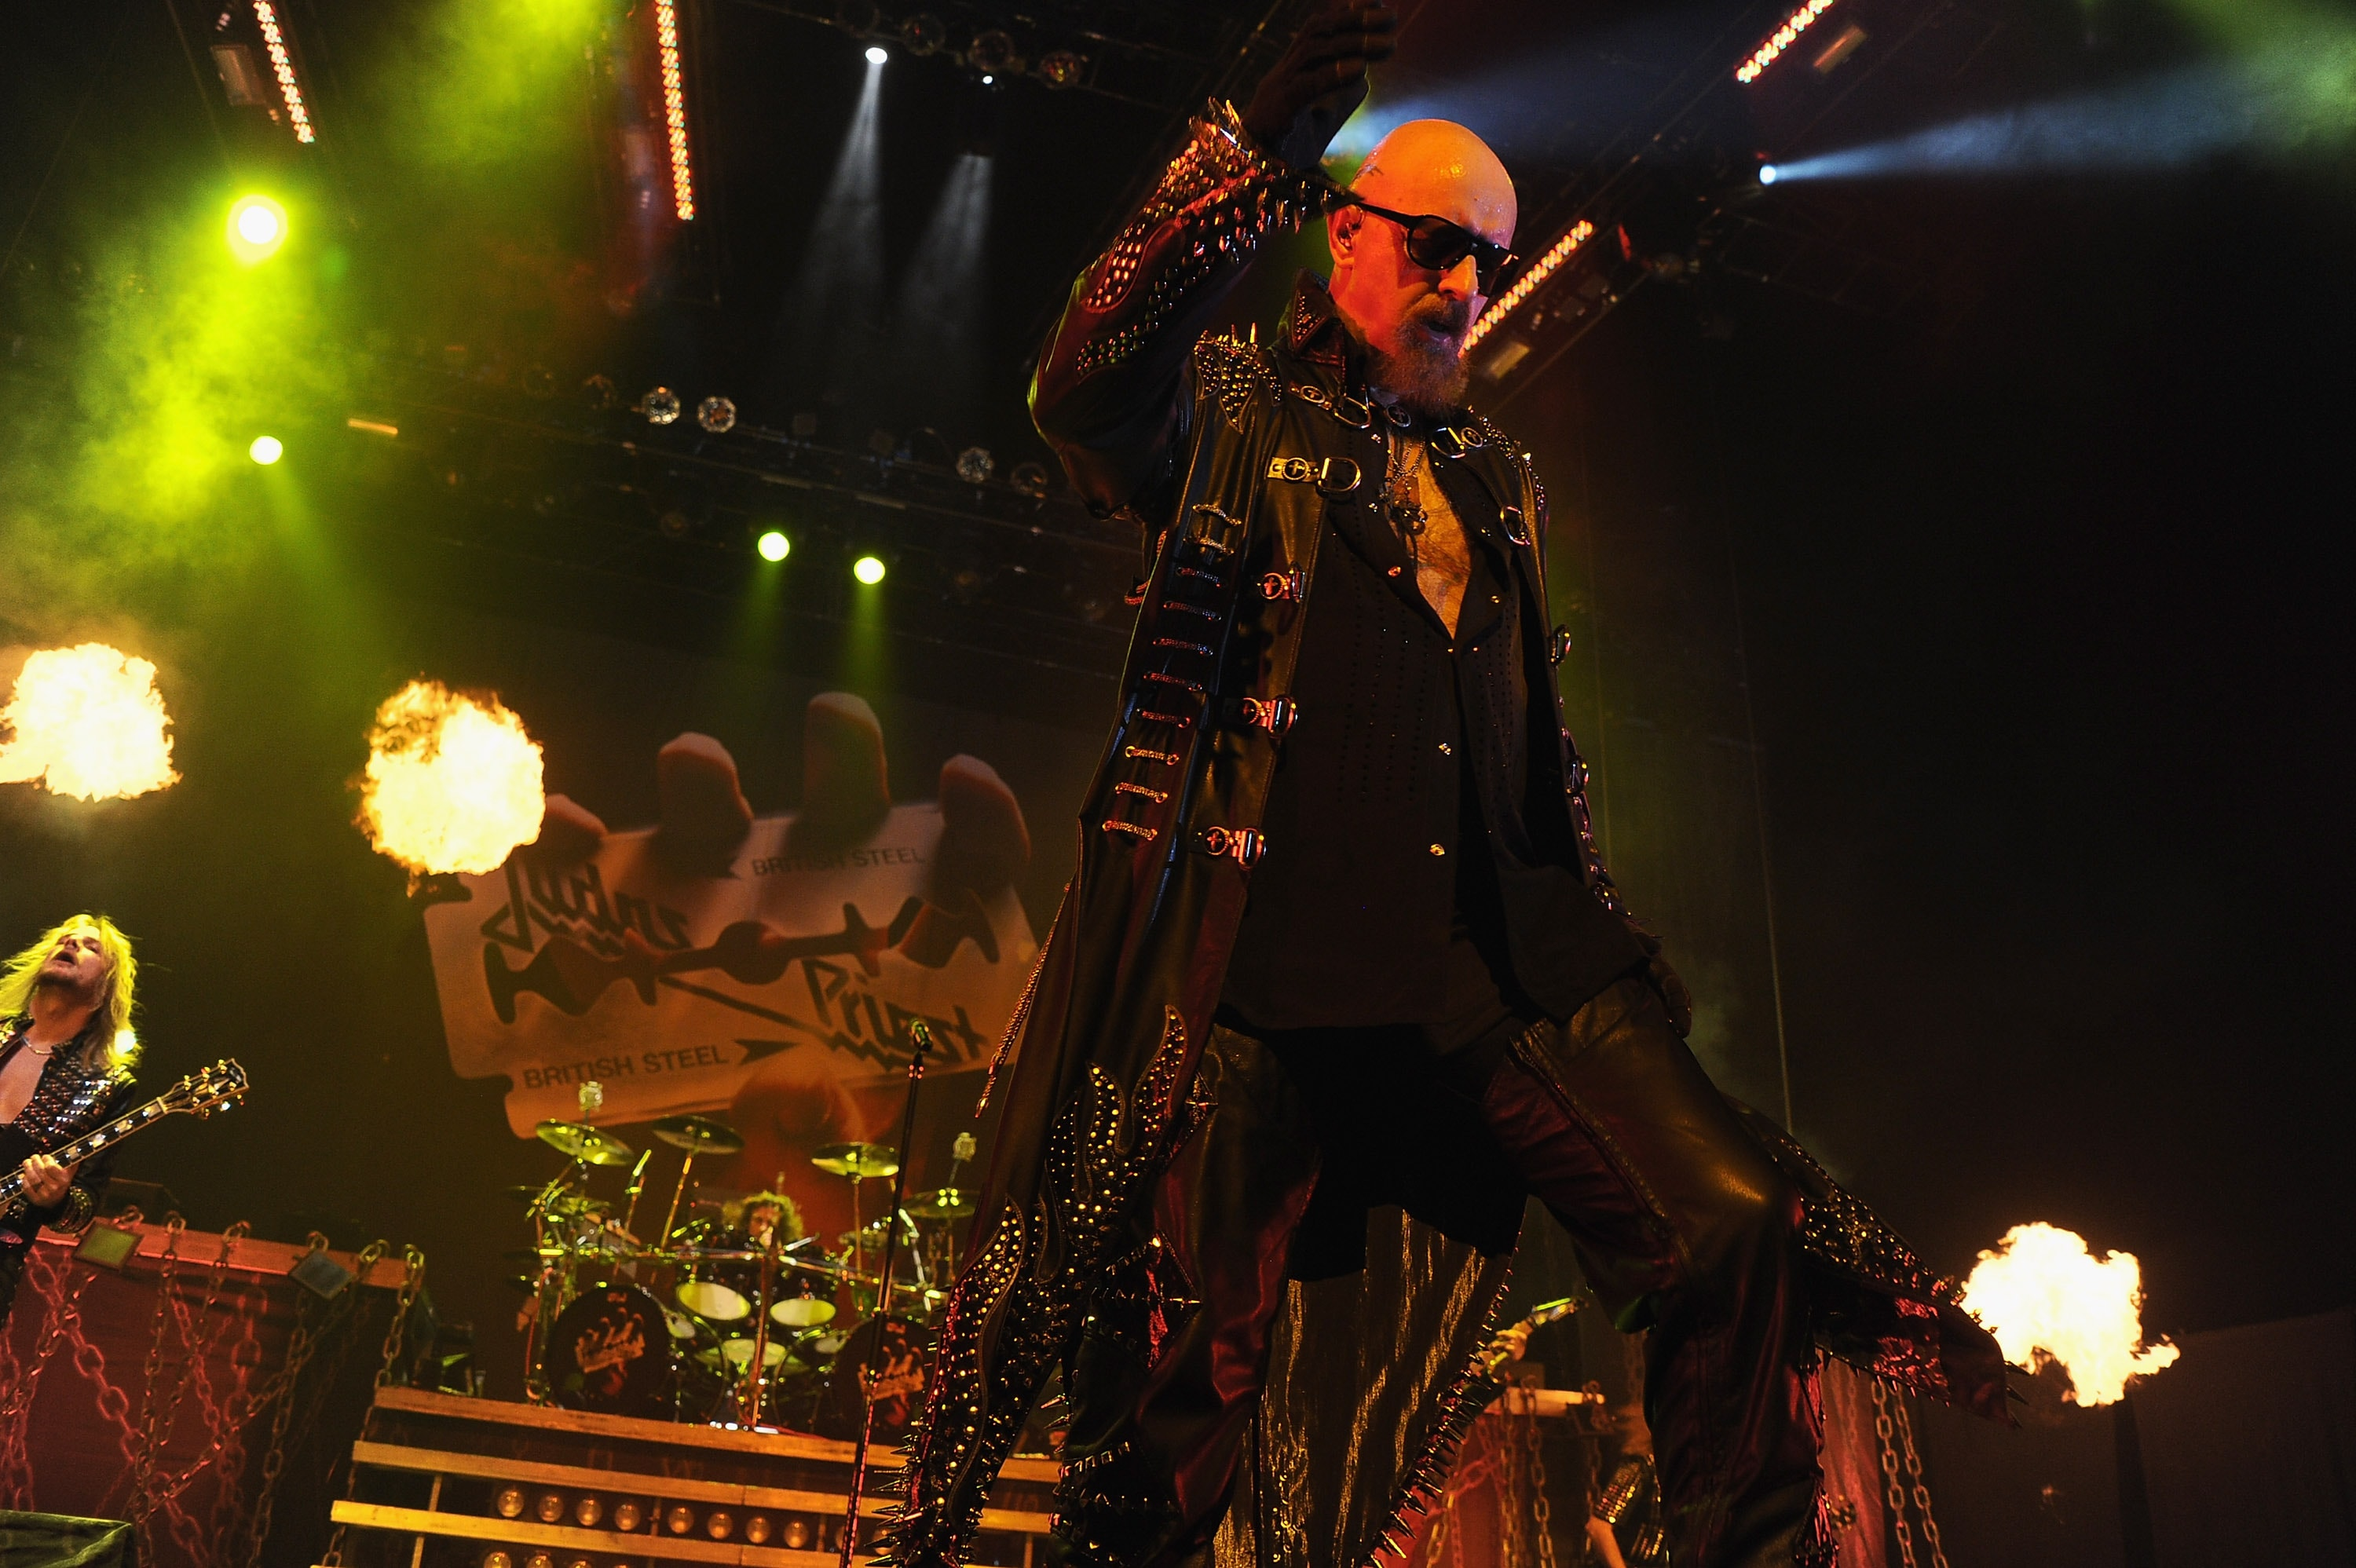 EAST RUTHERFORD, NJ - NOVEMBER 18: Rob Halford of Judas Priest performs at the Izod Center on November 18, 2011 in East Rutherford, New Jersey.